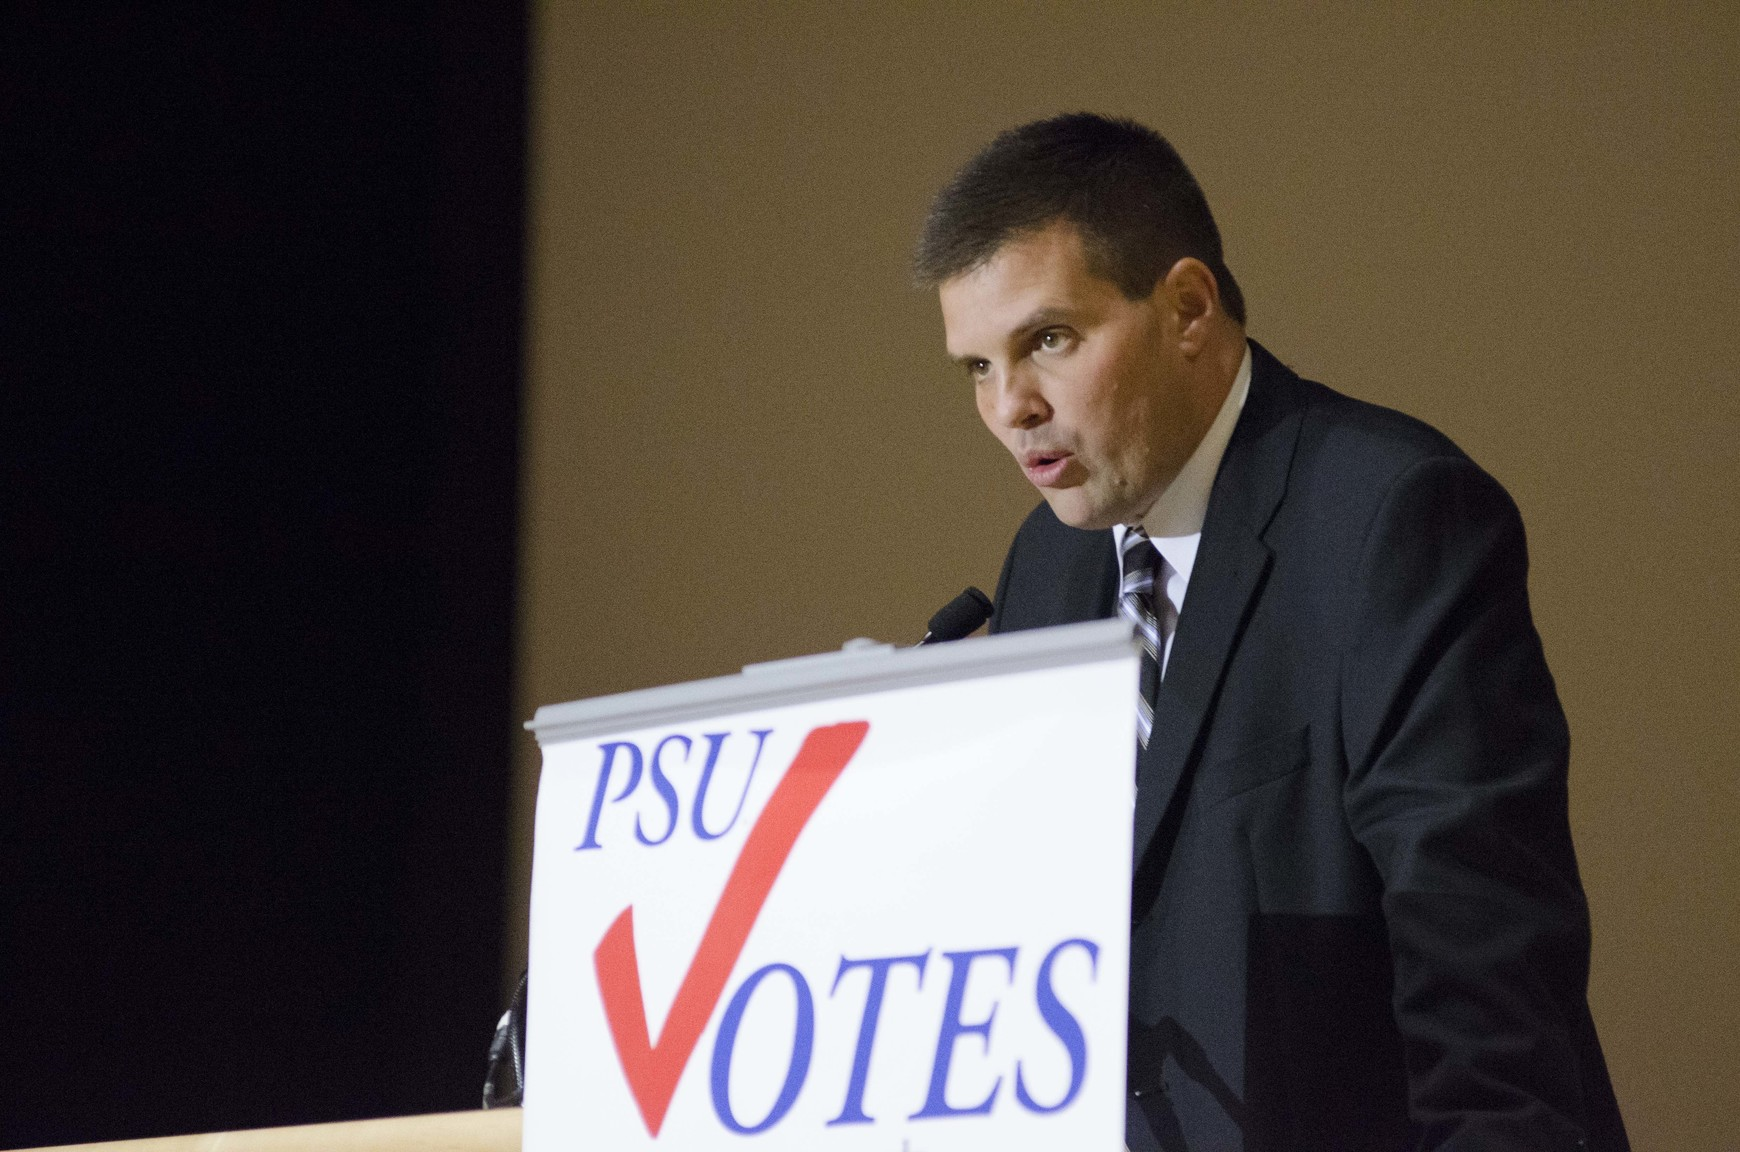 Jay Paterno PSU Votes